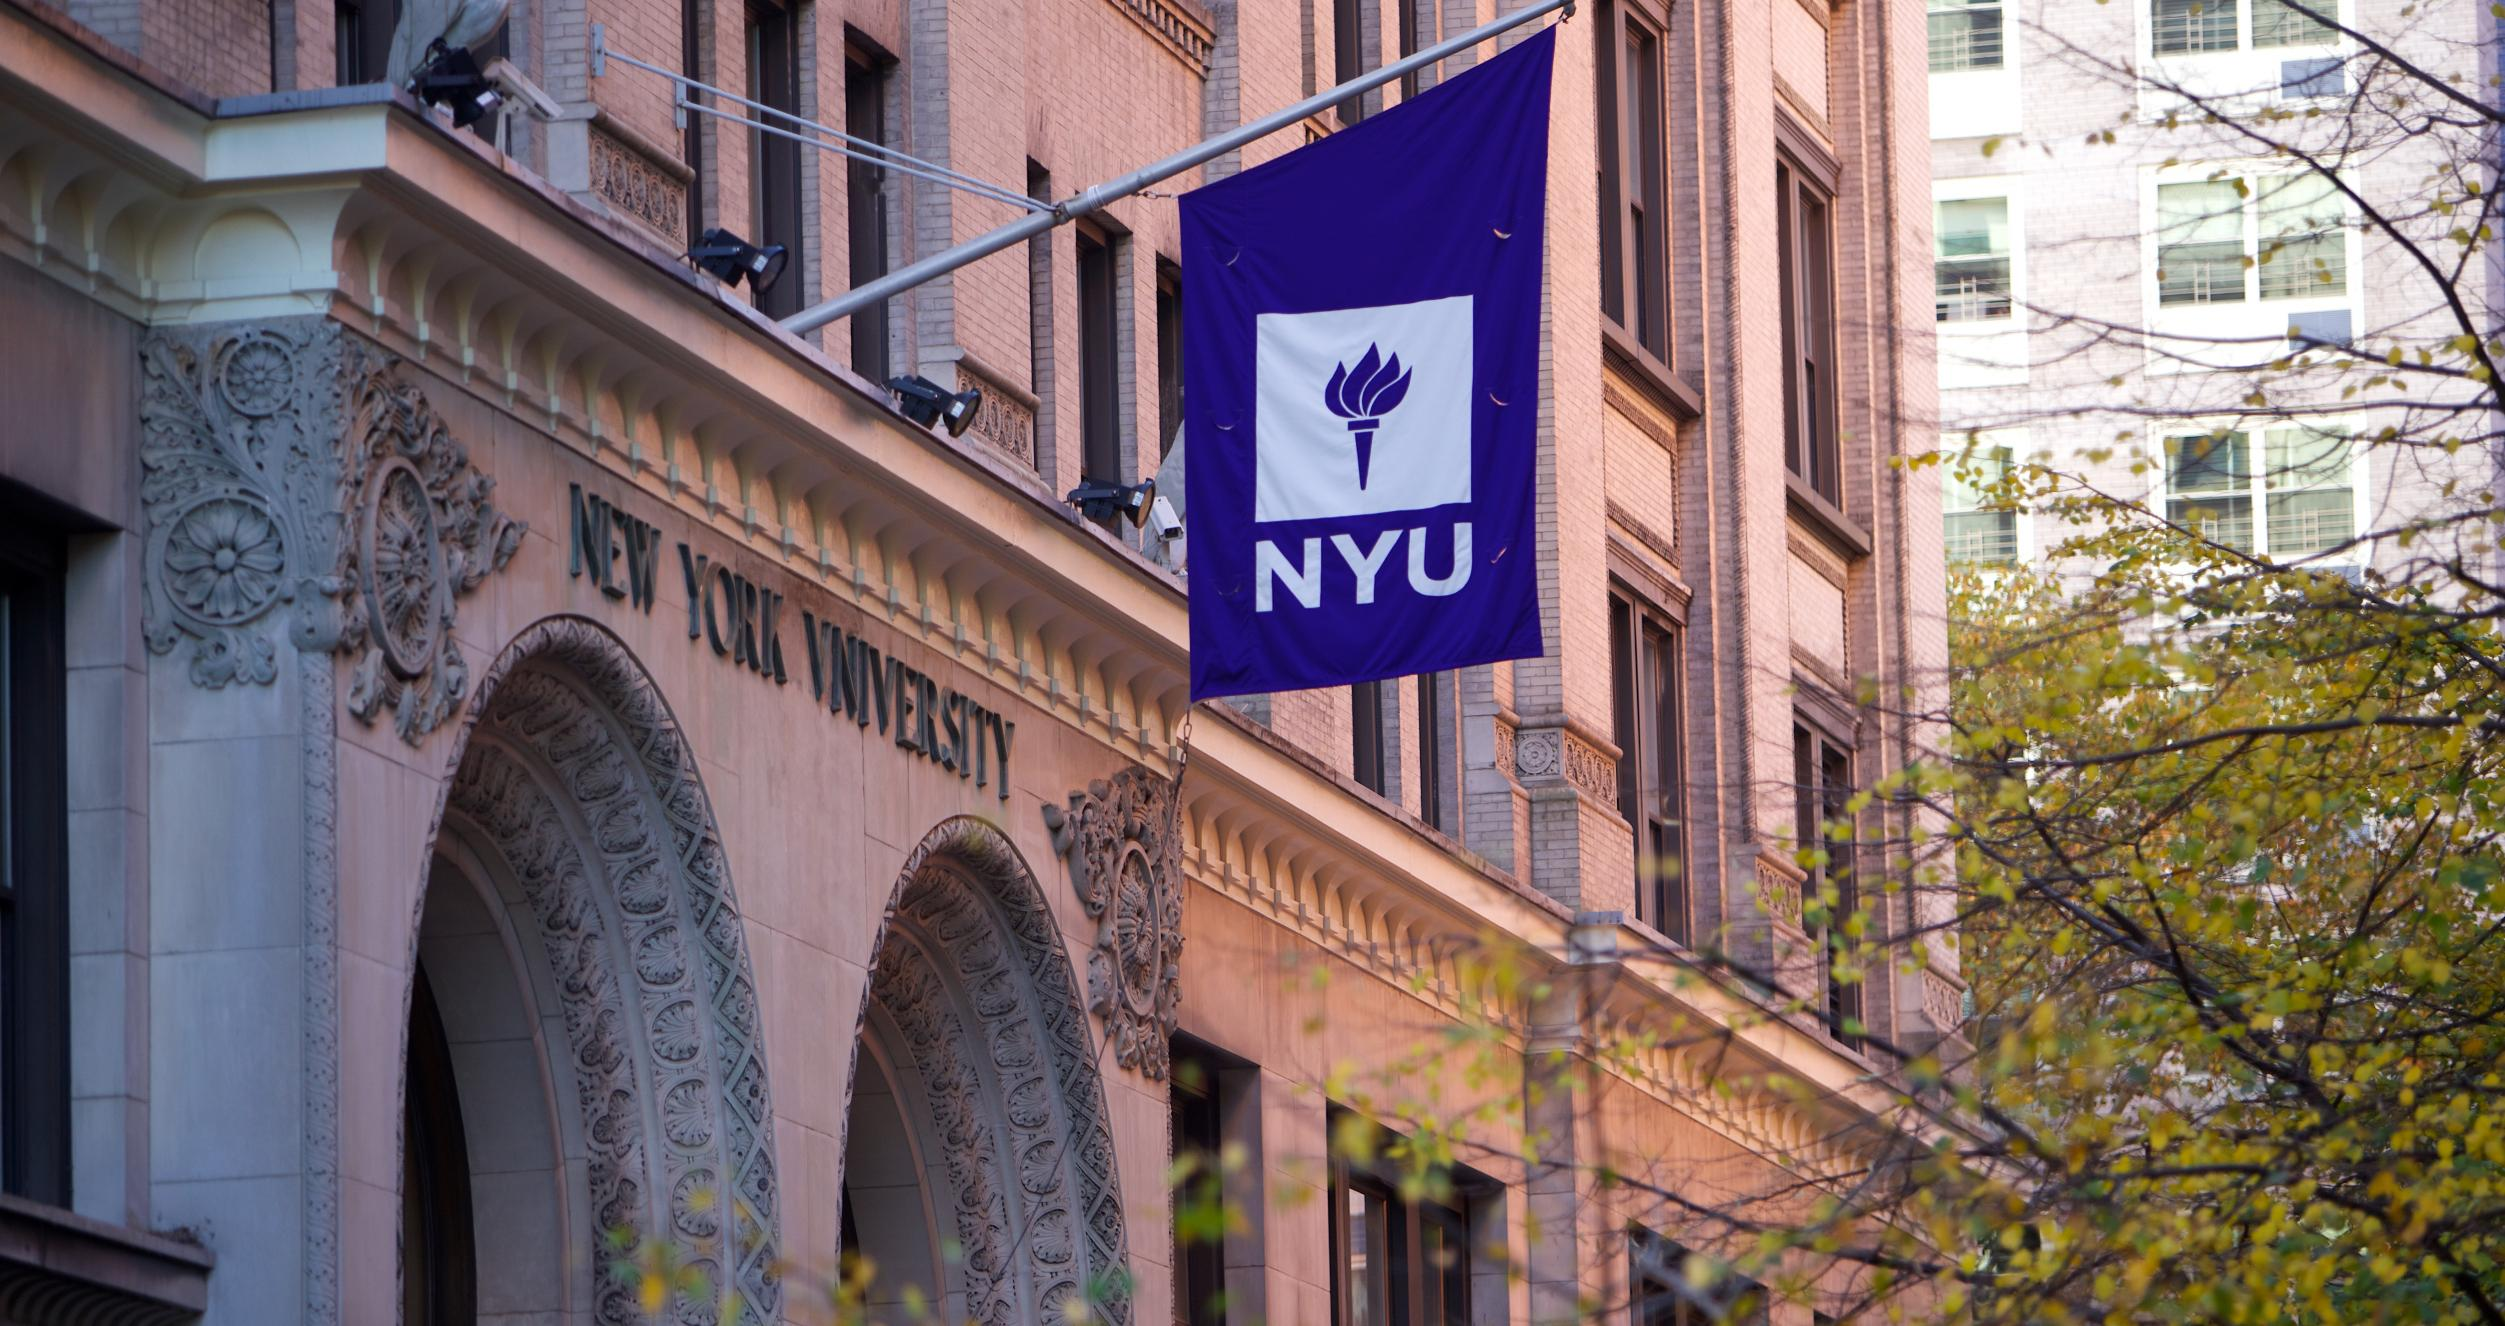 Entrance to Shimkin Hall with NYU flag above and trees on the right